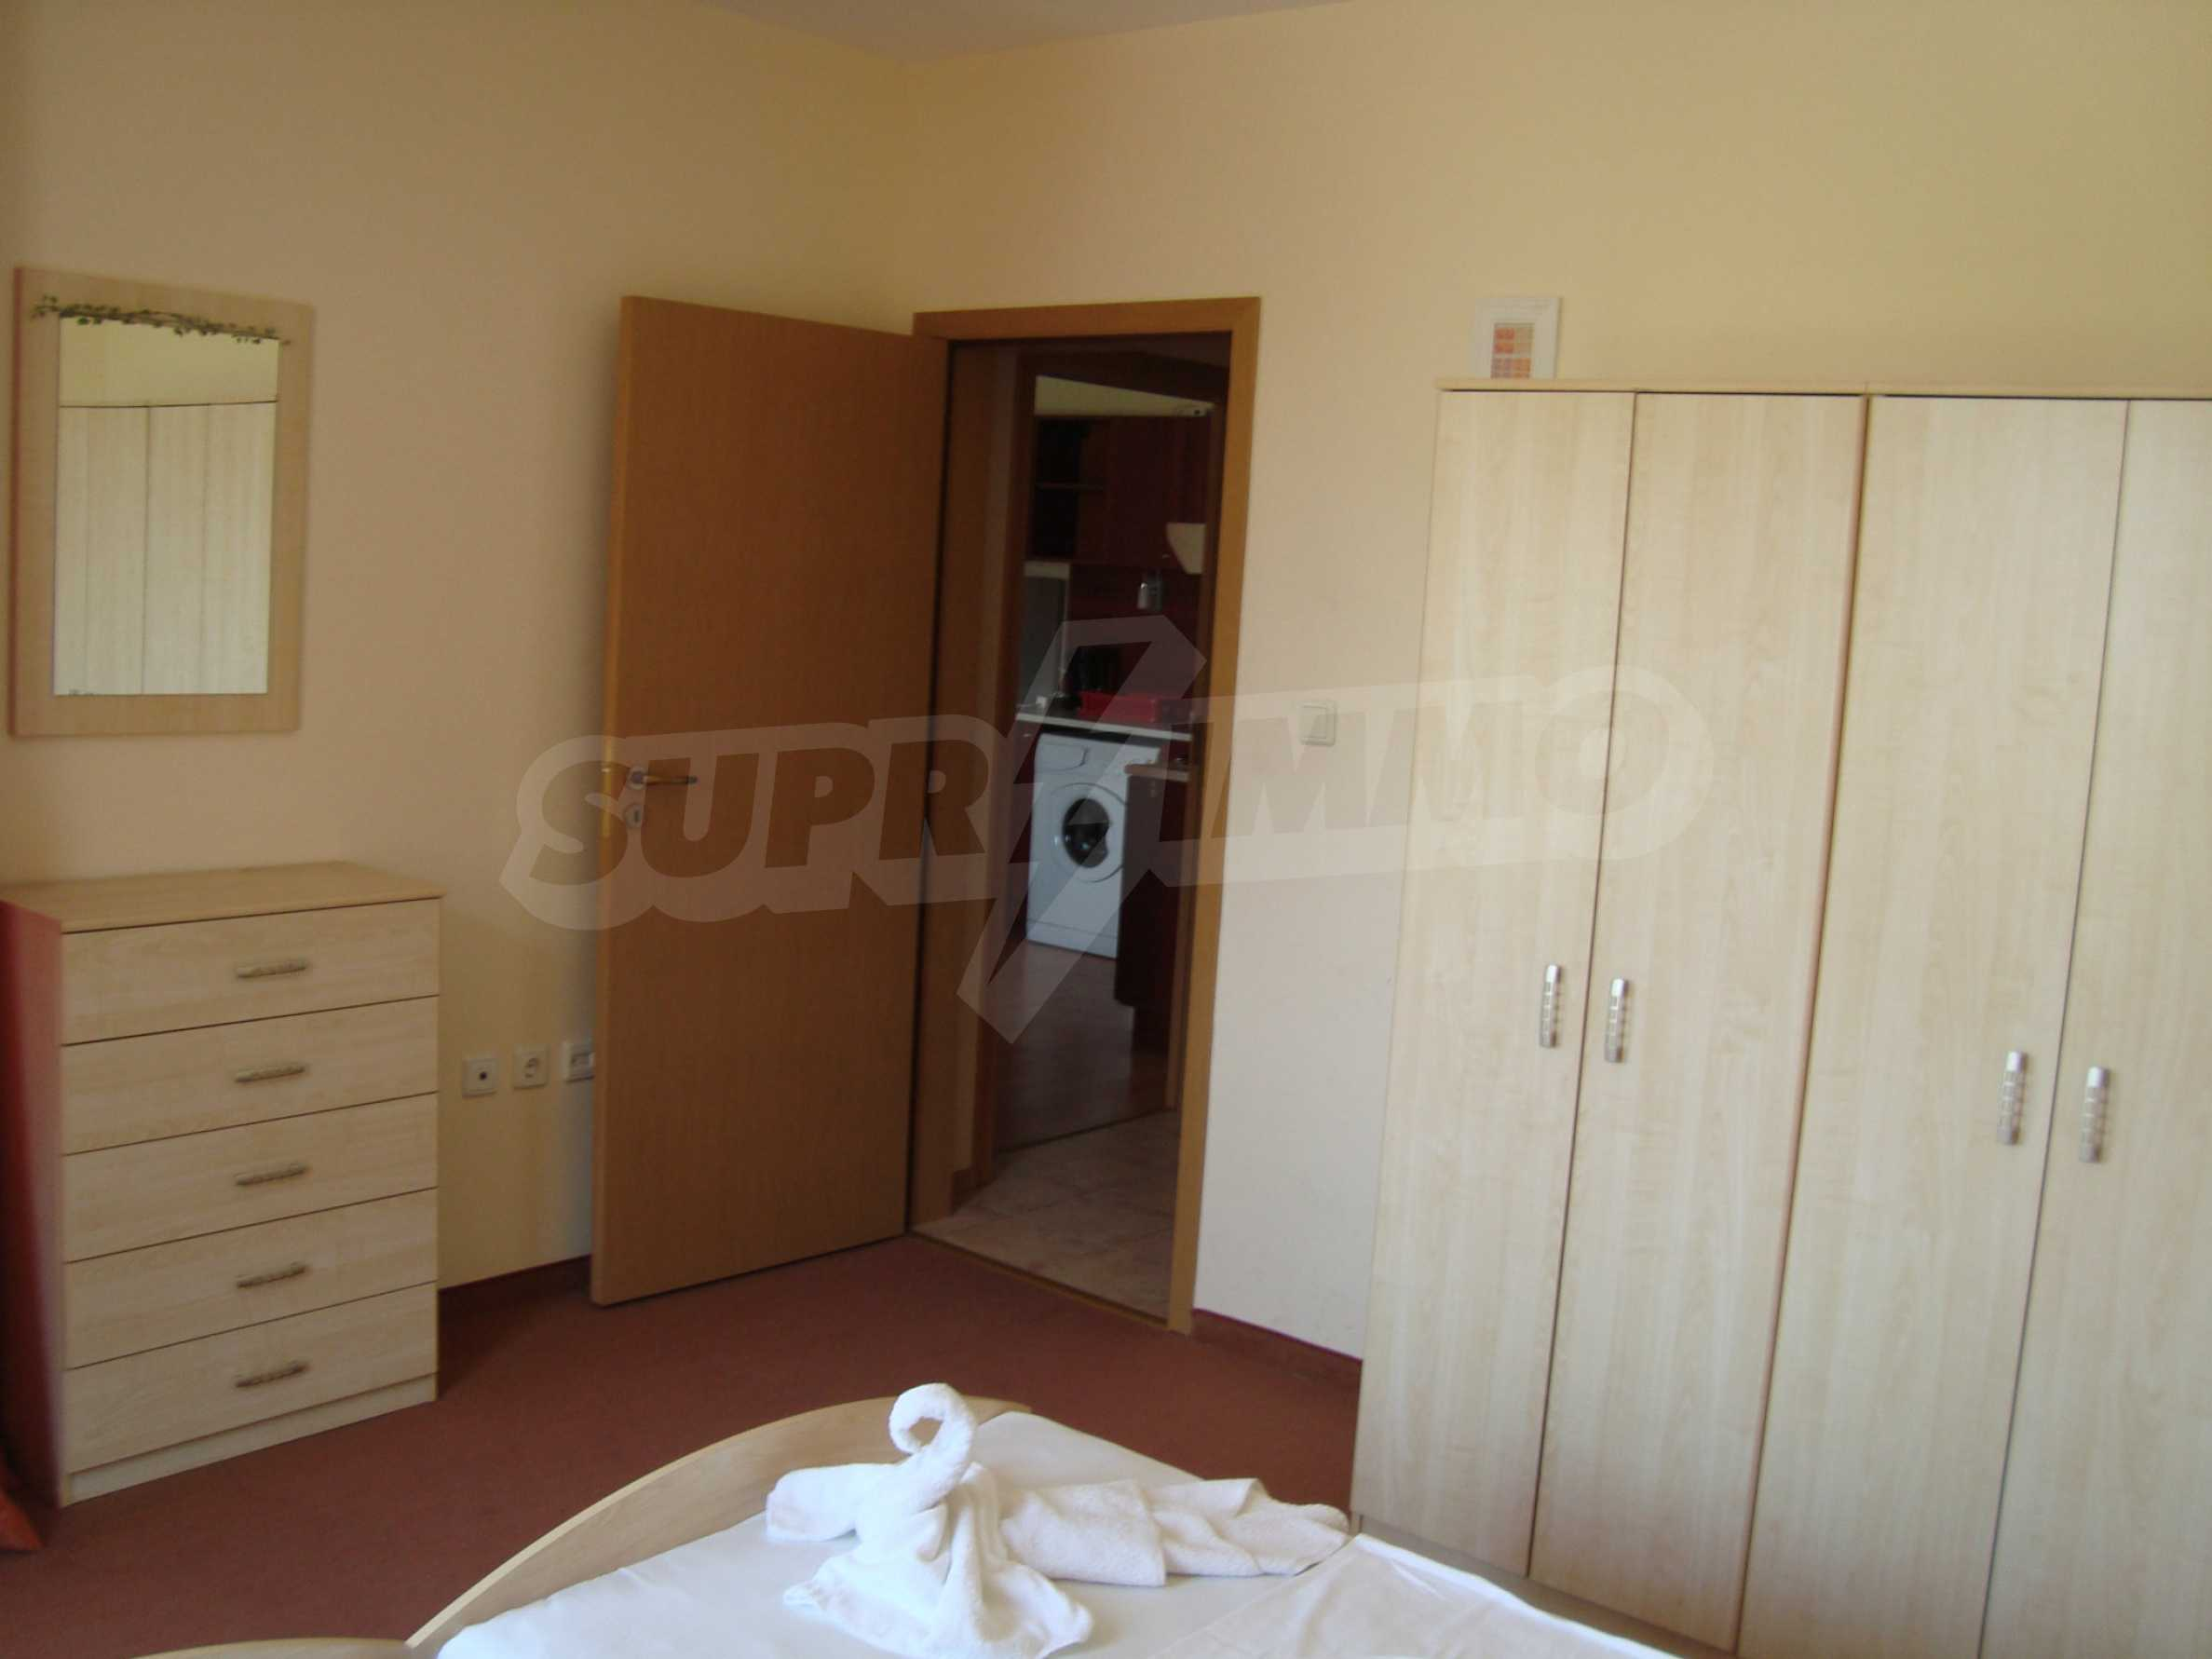 One-bedroom apartment in Prestige City 1 complex in Sunny beach 10